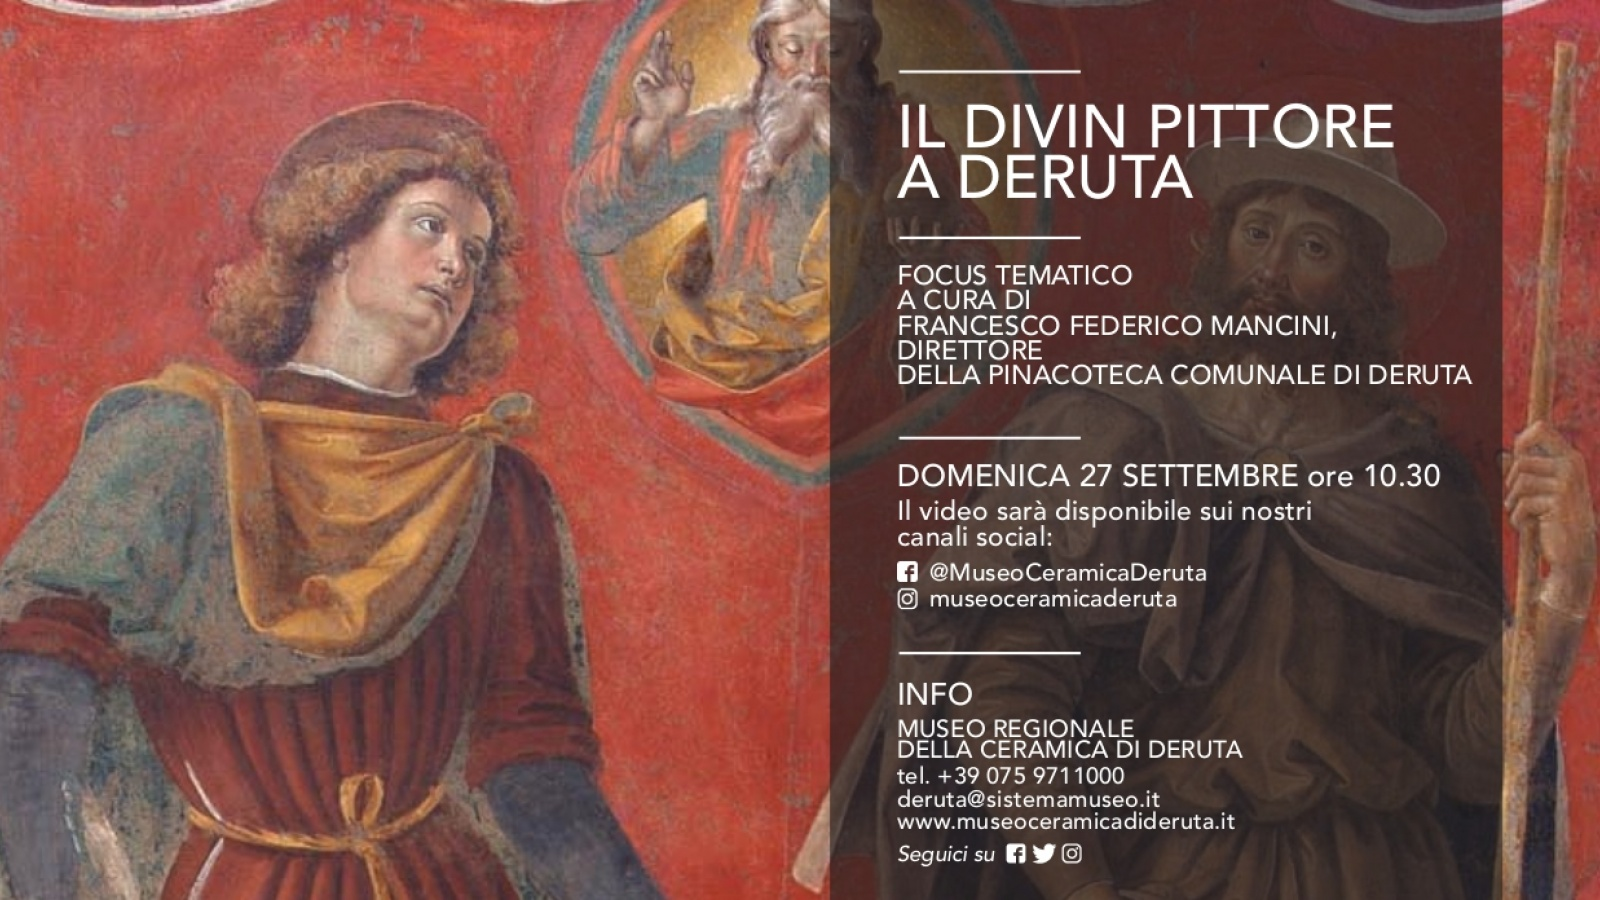 European Heritage Days 2020: the Divine Painter in Deruta